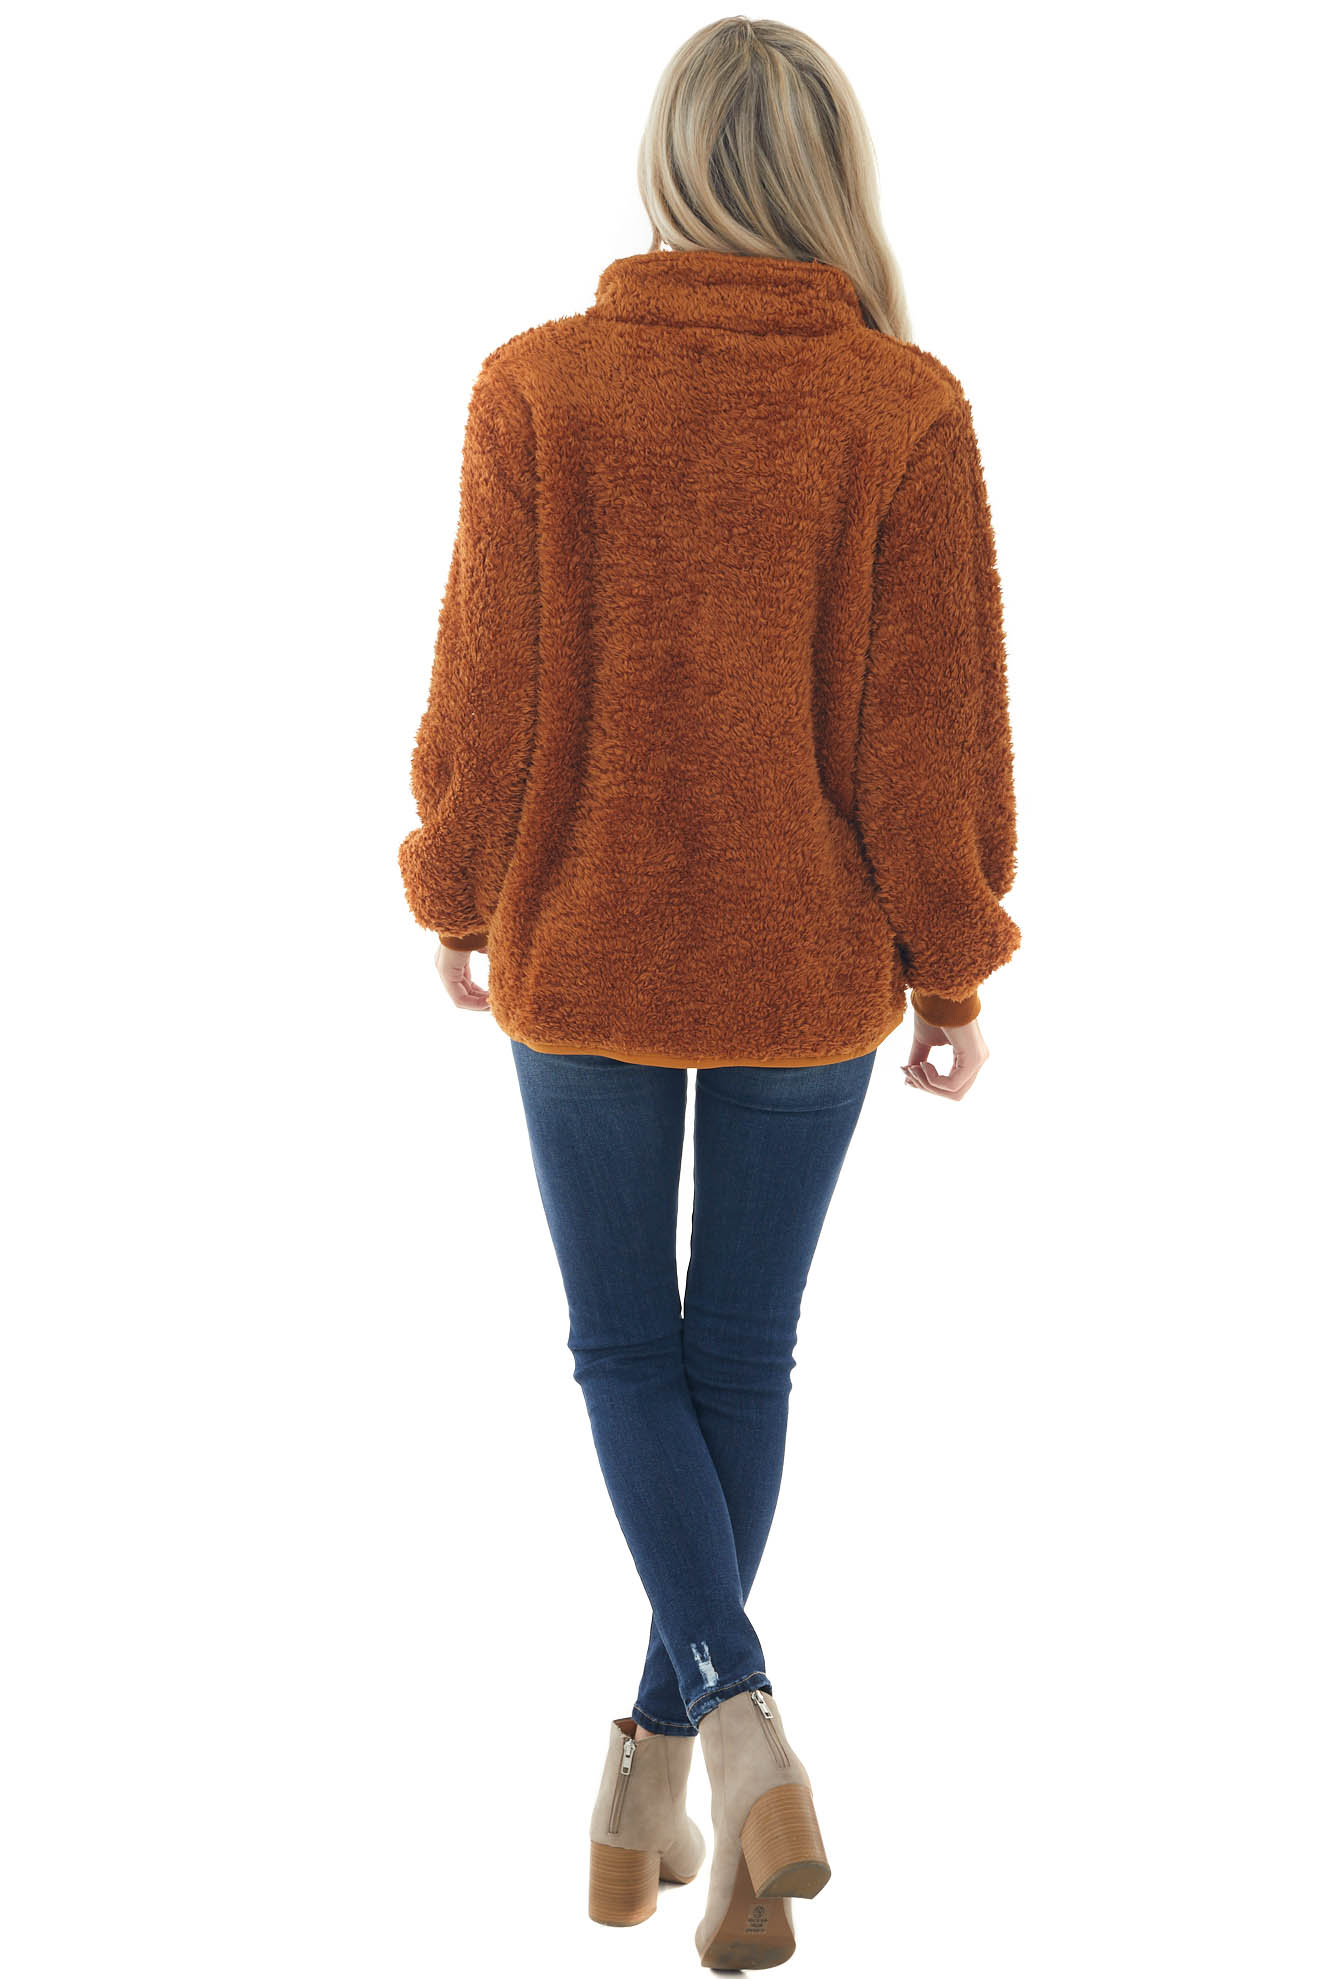 Copper Zip Up Soft Furry Jacket with Pockets